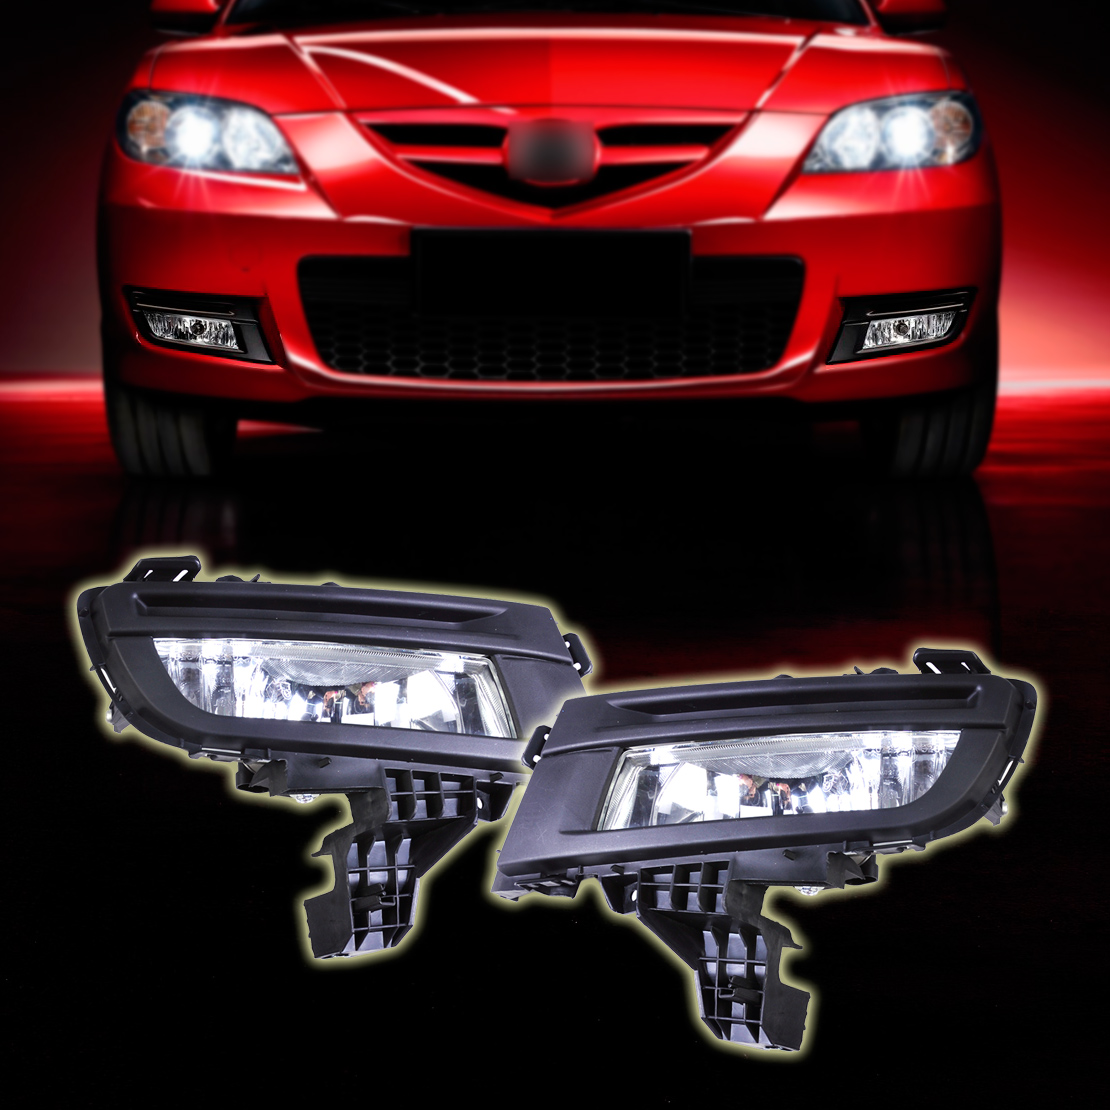 DWCX Pair Front Fog Light Lamp 9006 12V 51W Front Left + Right Side Replacement for Mazda 3 2007 - 2009 without Wiring Harness